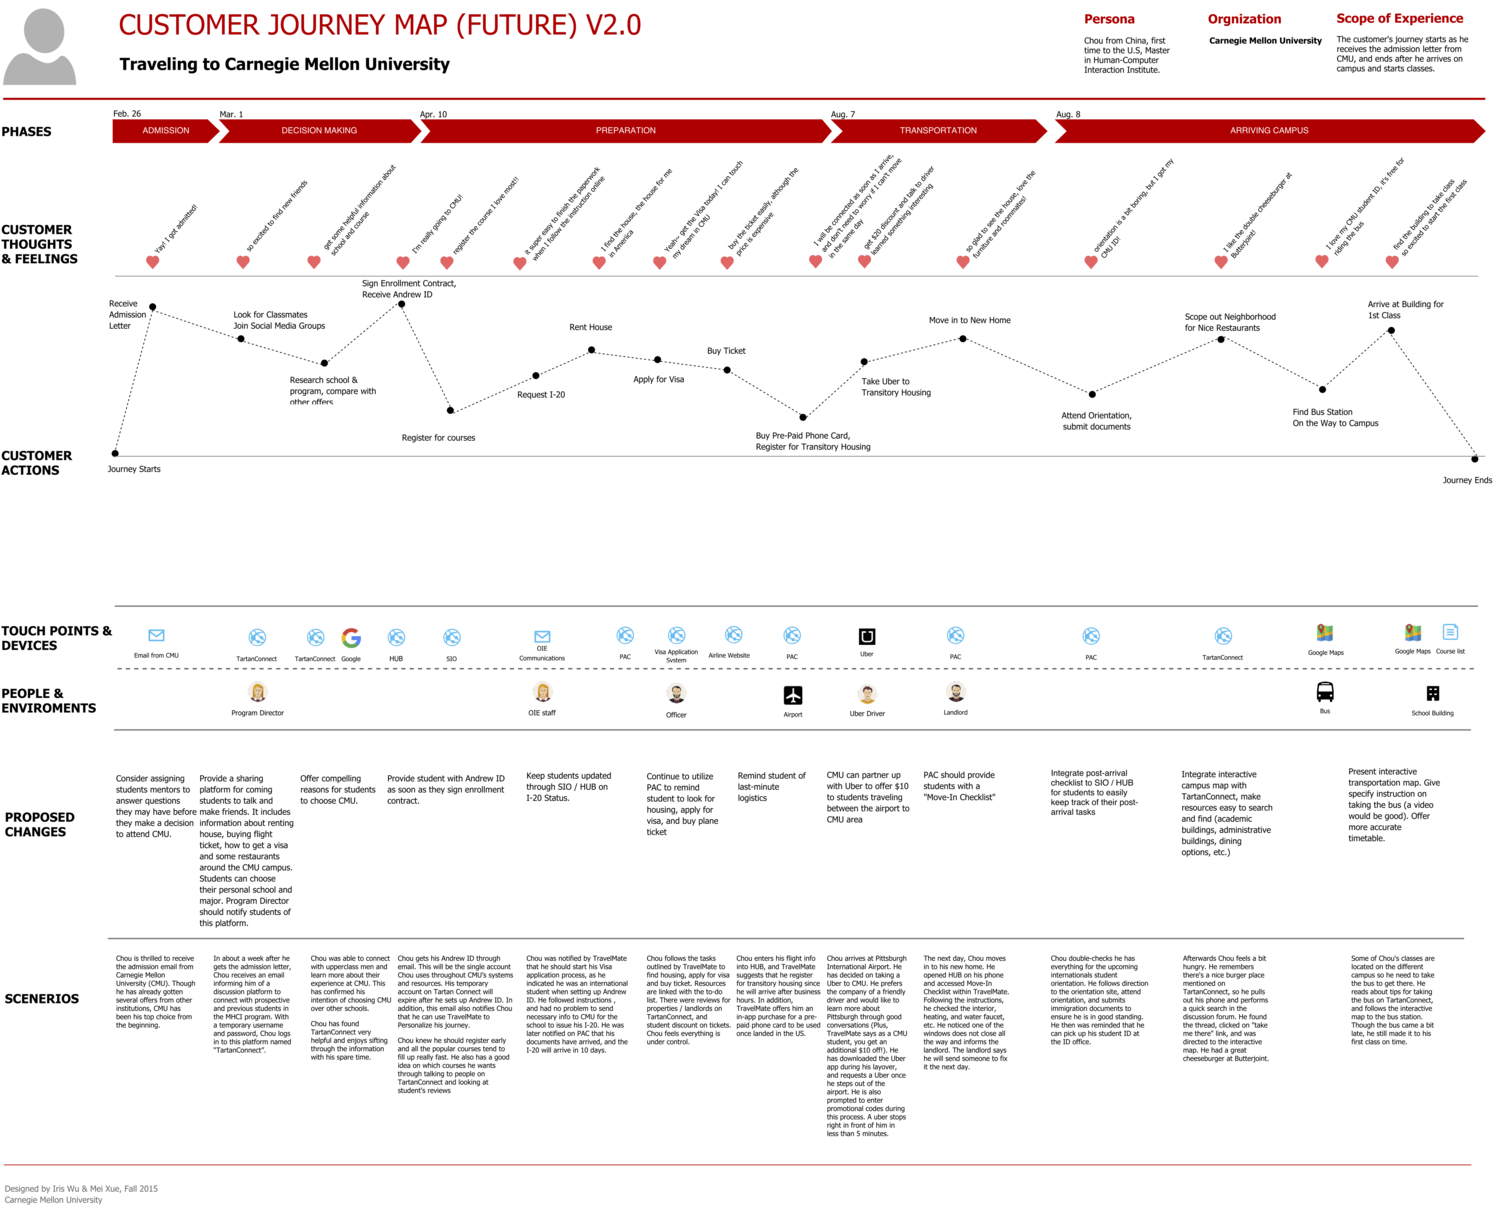 Future state of customer journey map | Journey mapping ... on sales process stages, sales management process, sales forecasting process, sales coaching process, sales lead generation process, sales strategic planning process, sales cycle process,